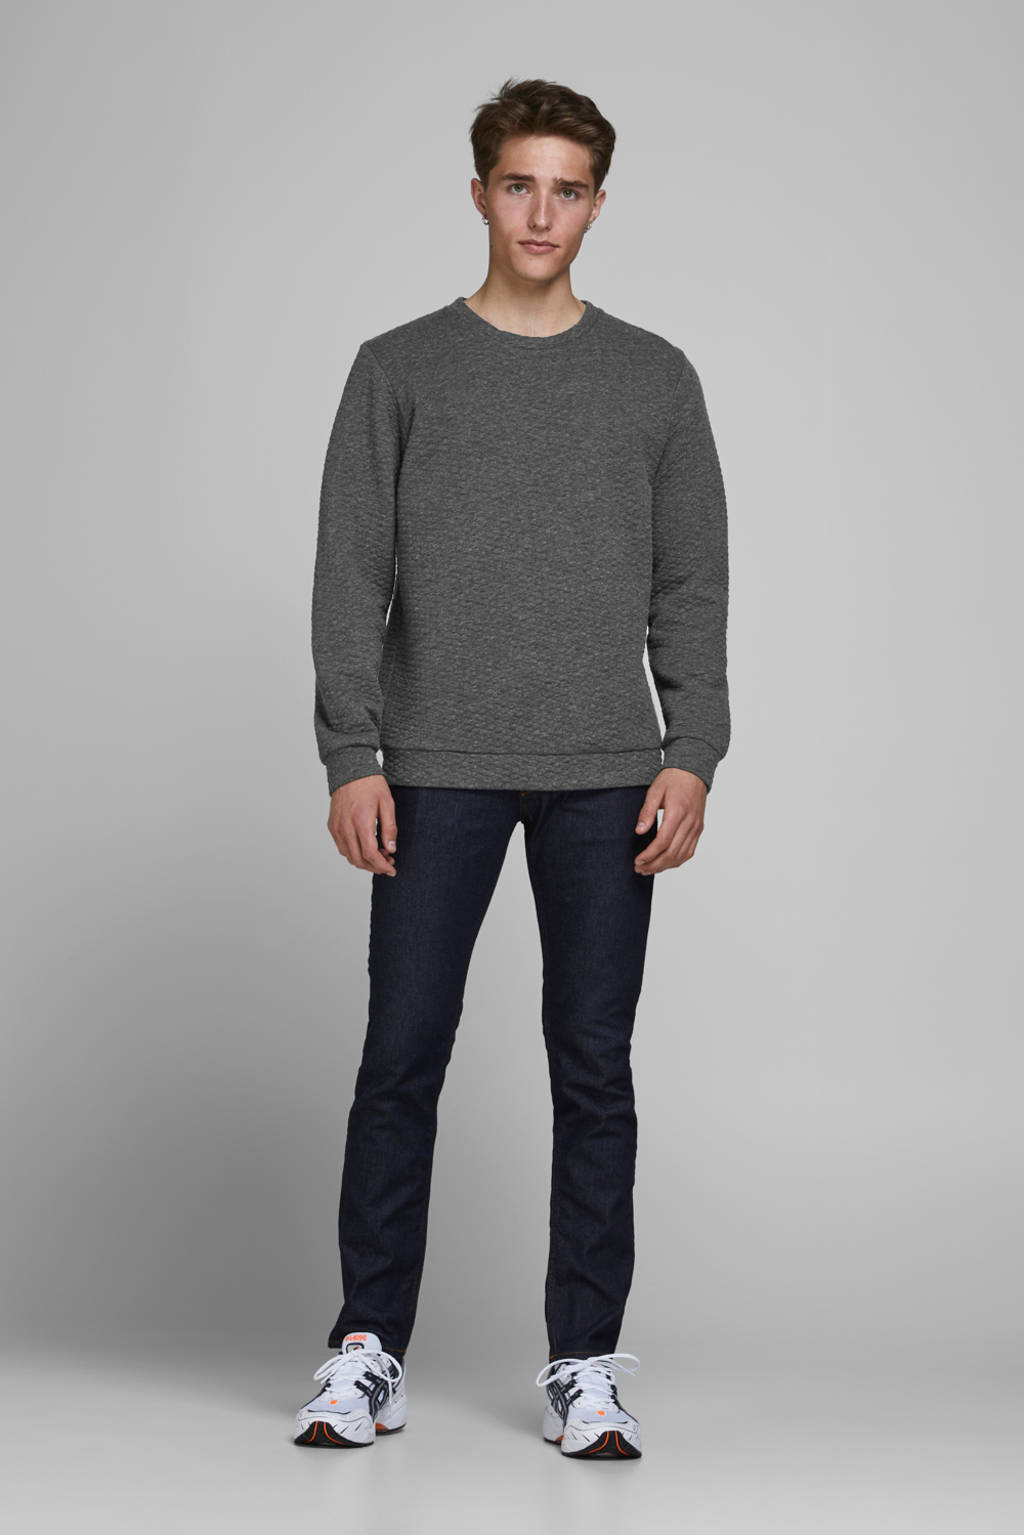 JACK & JONES ESSENTIALS gemêleerde sweater grijs, Grijs